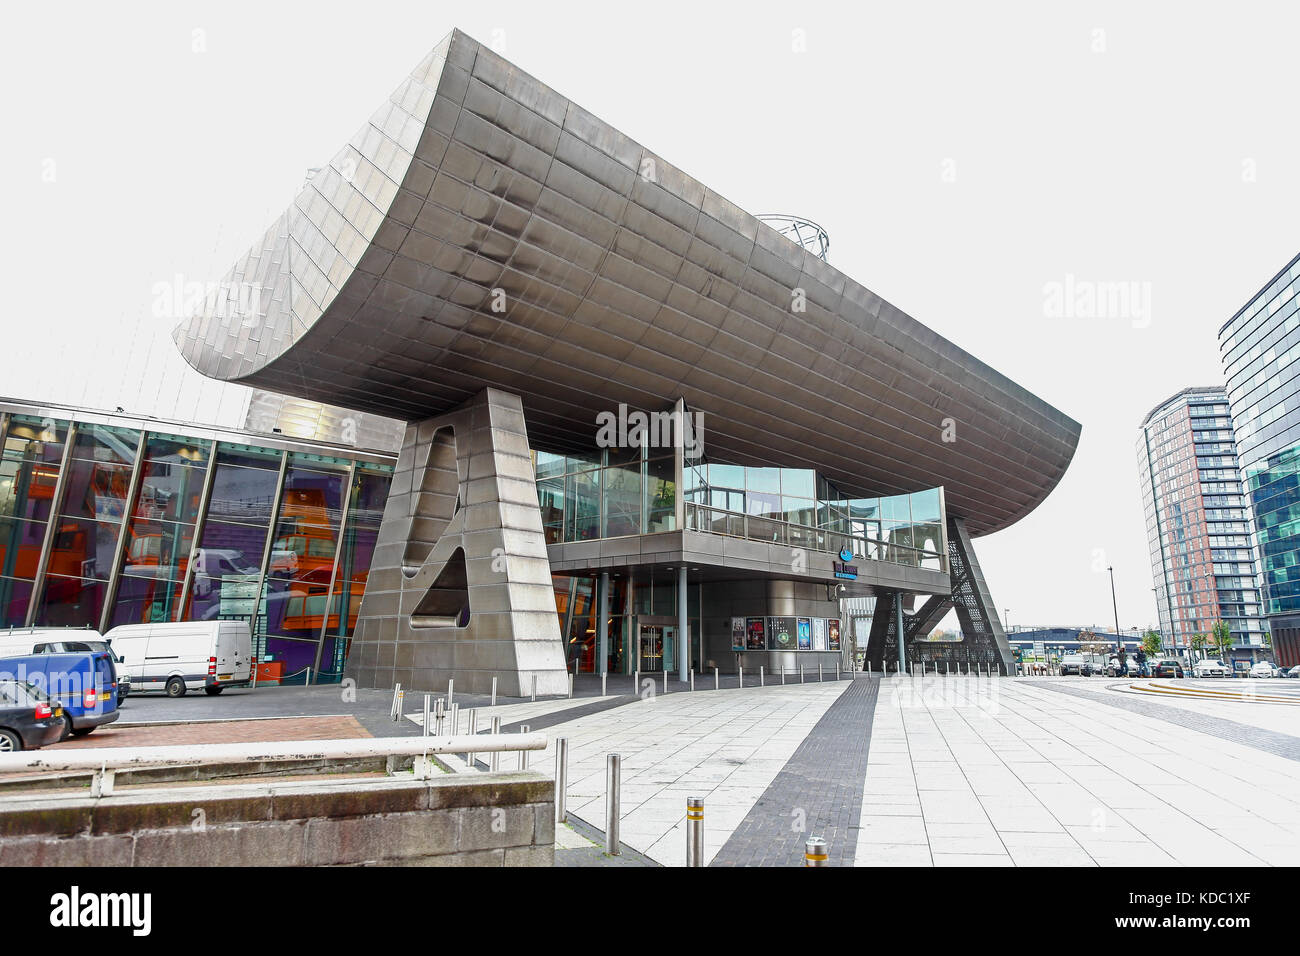 The Lowry Outlet Centre at Media City UK on the banks of the Manchester Ship Canal in Salford and Trafford, Greater Stock Photo